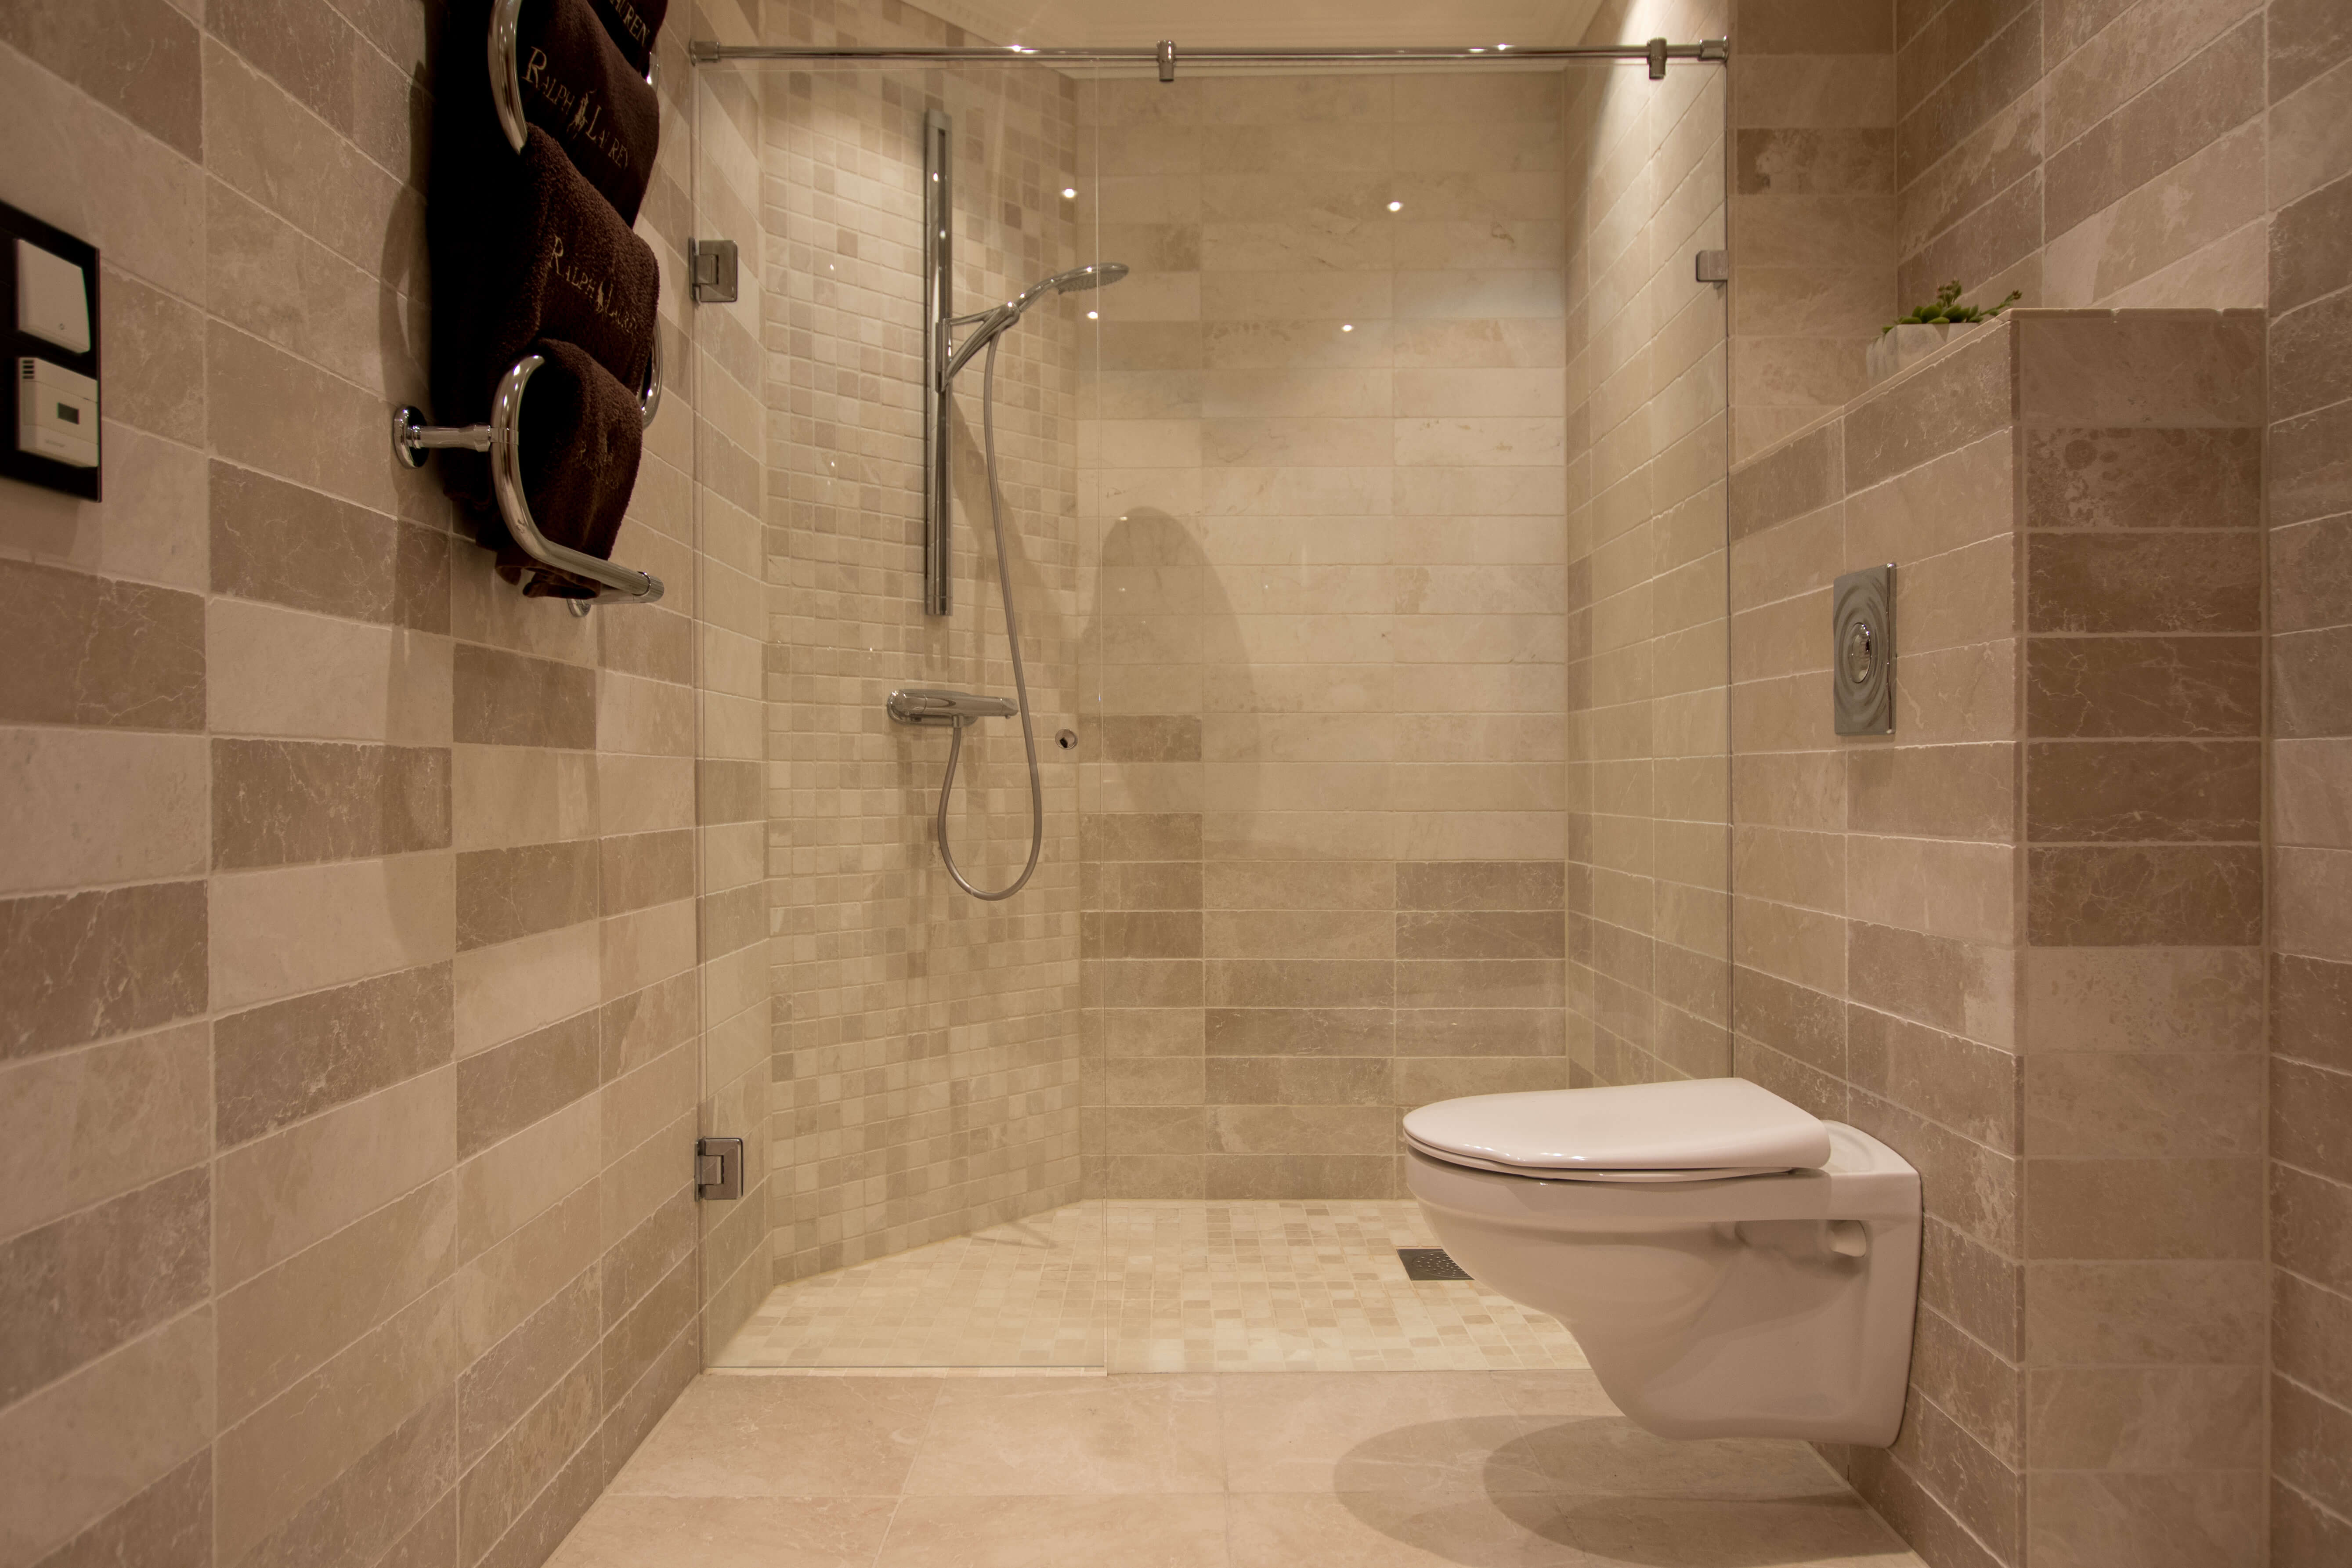 Quality bathroom with exclusive details.